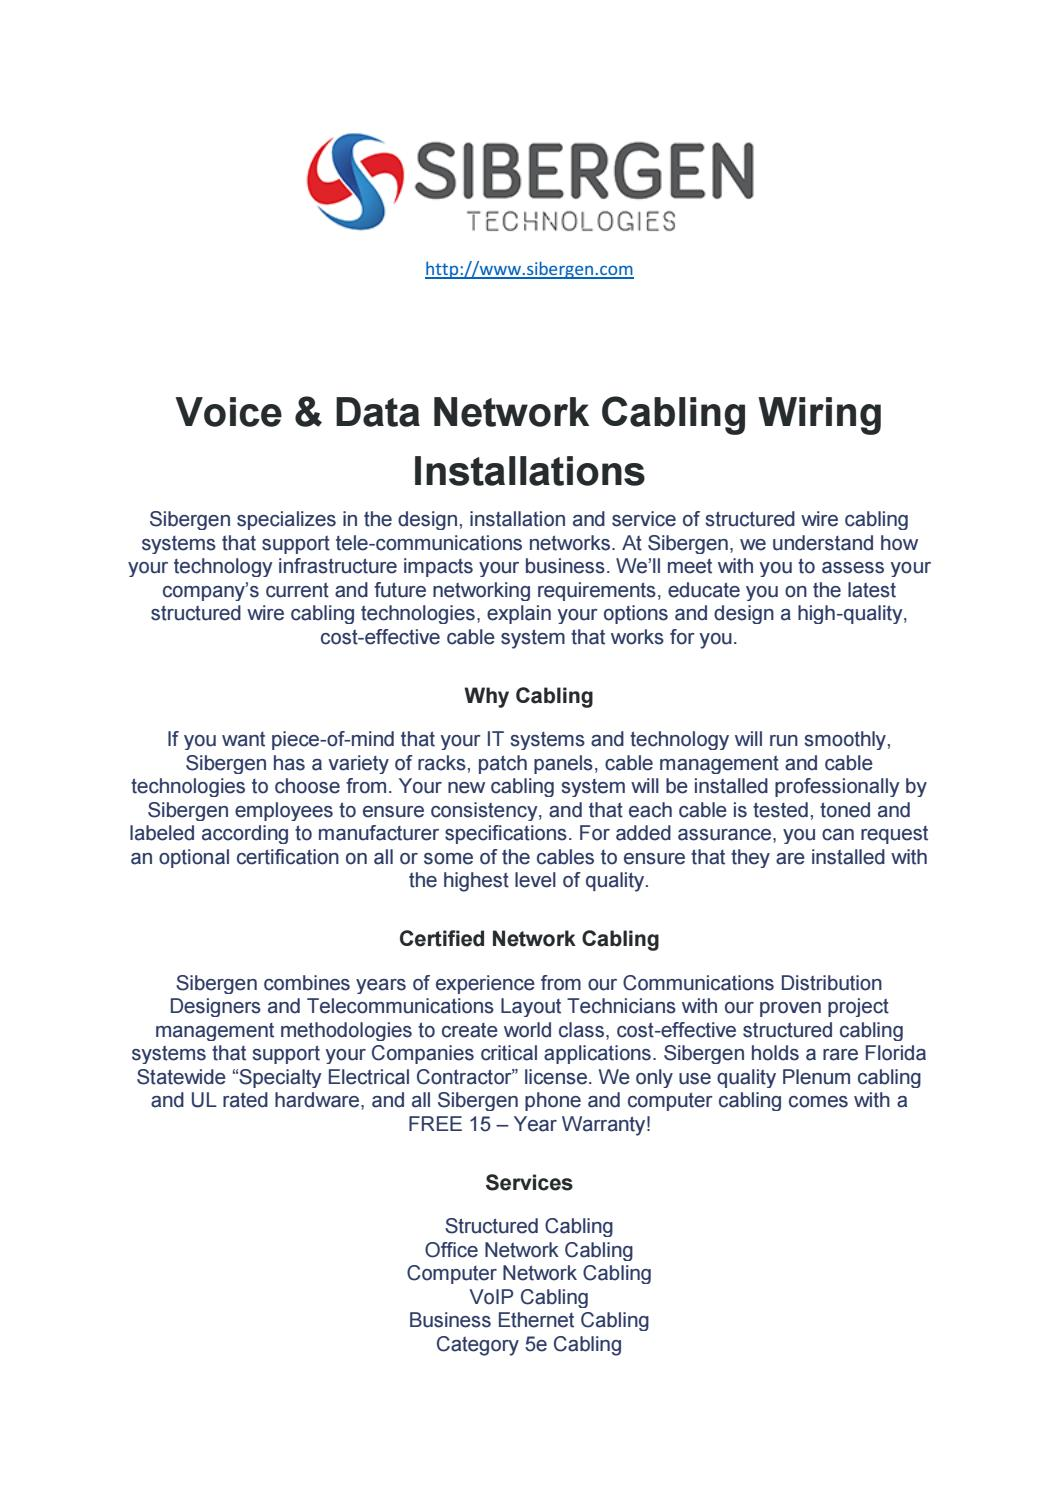 Voice And Data Cabling Services By Sibergen Technologies Issuu Structured Wiring Technology